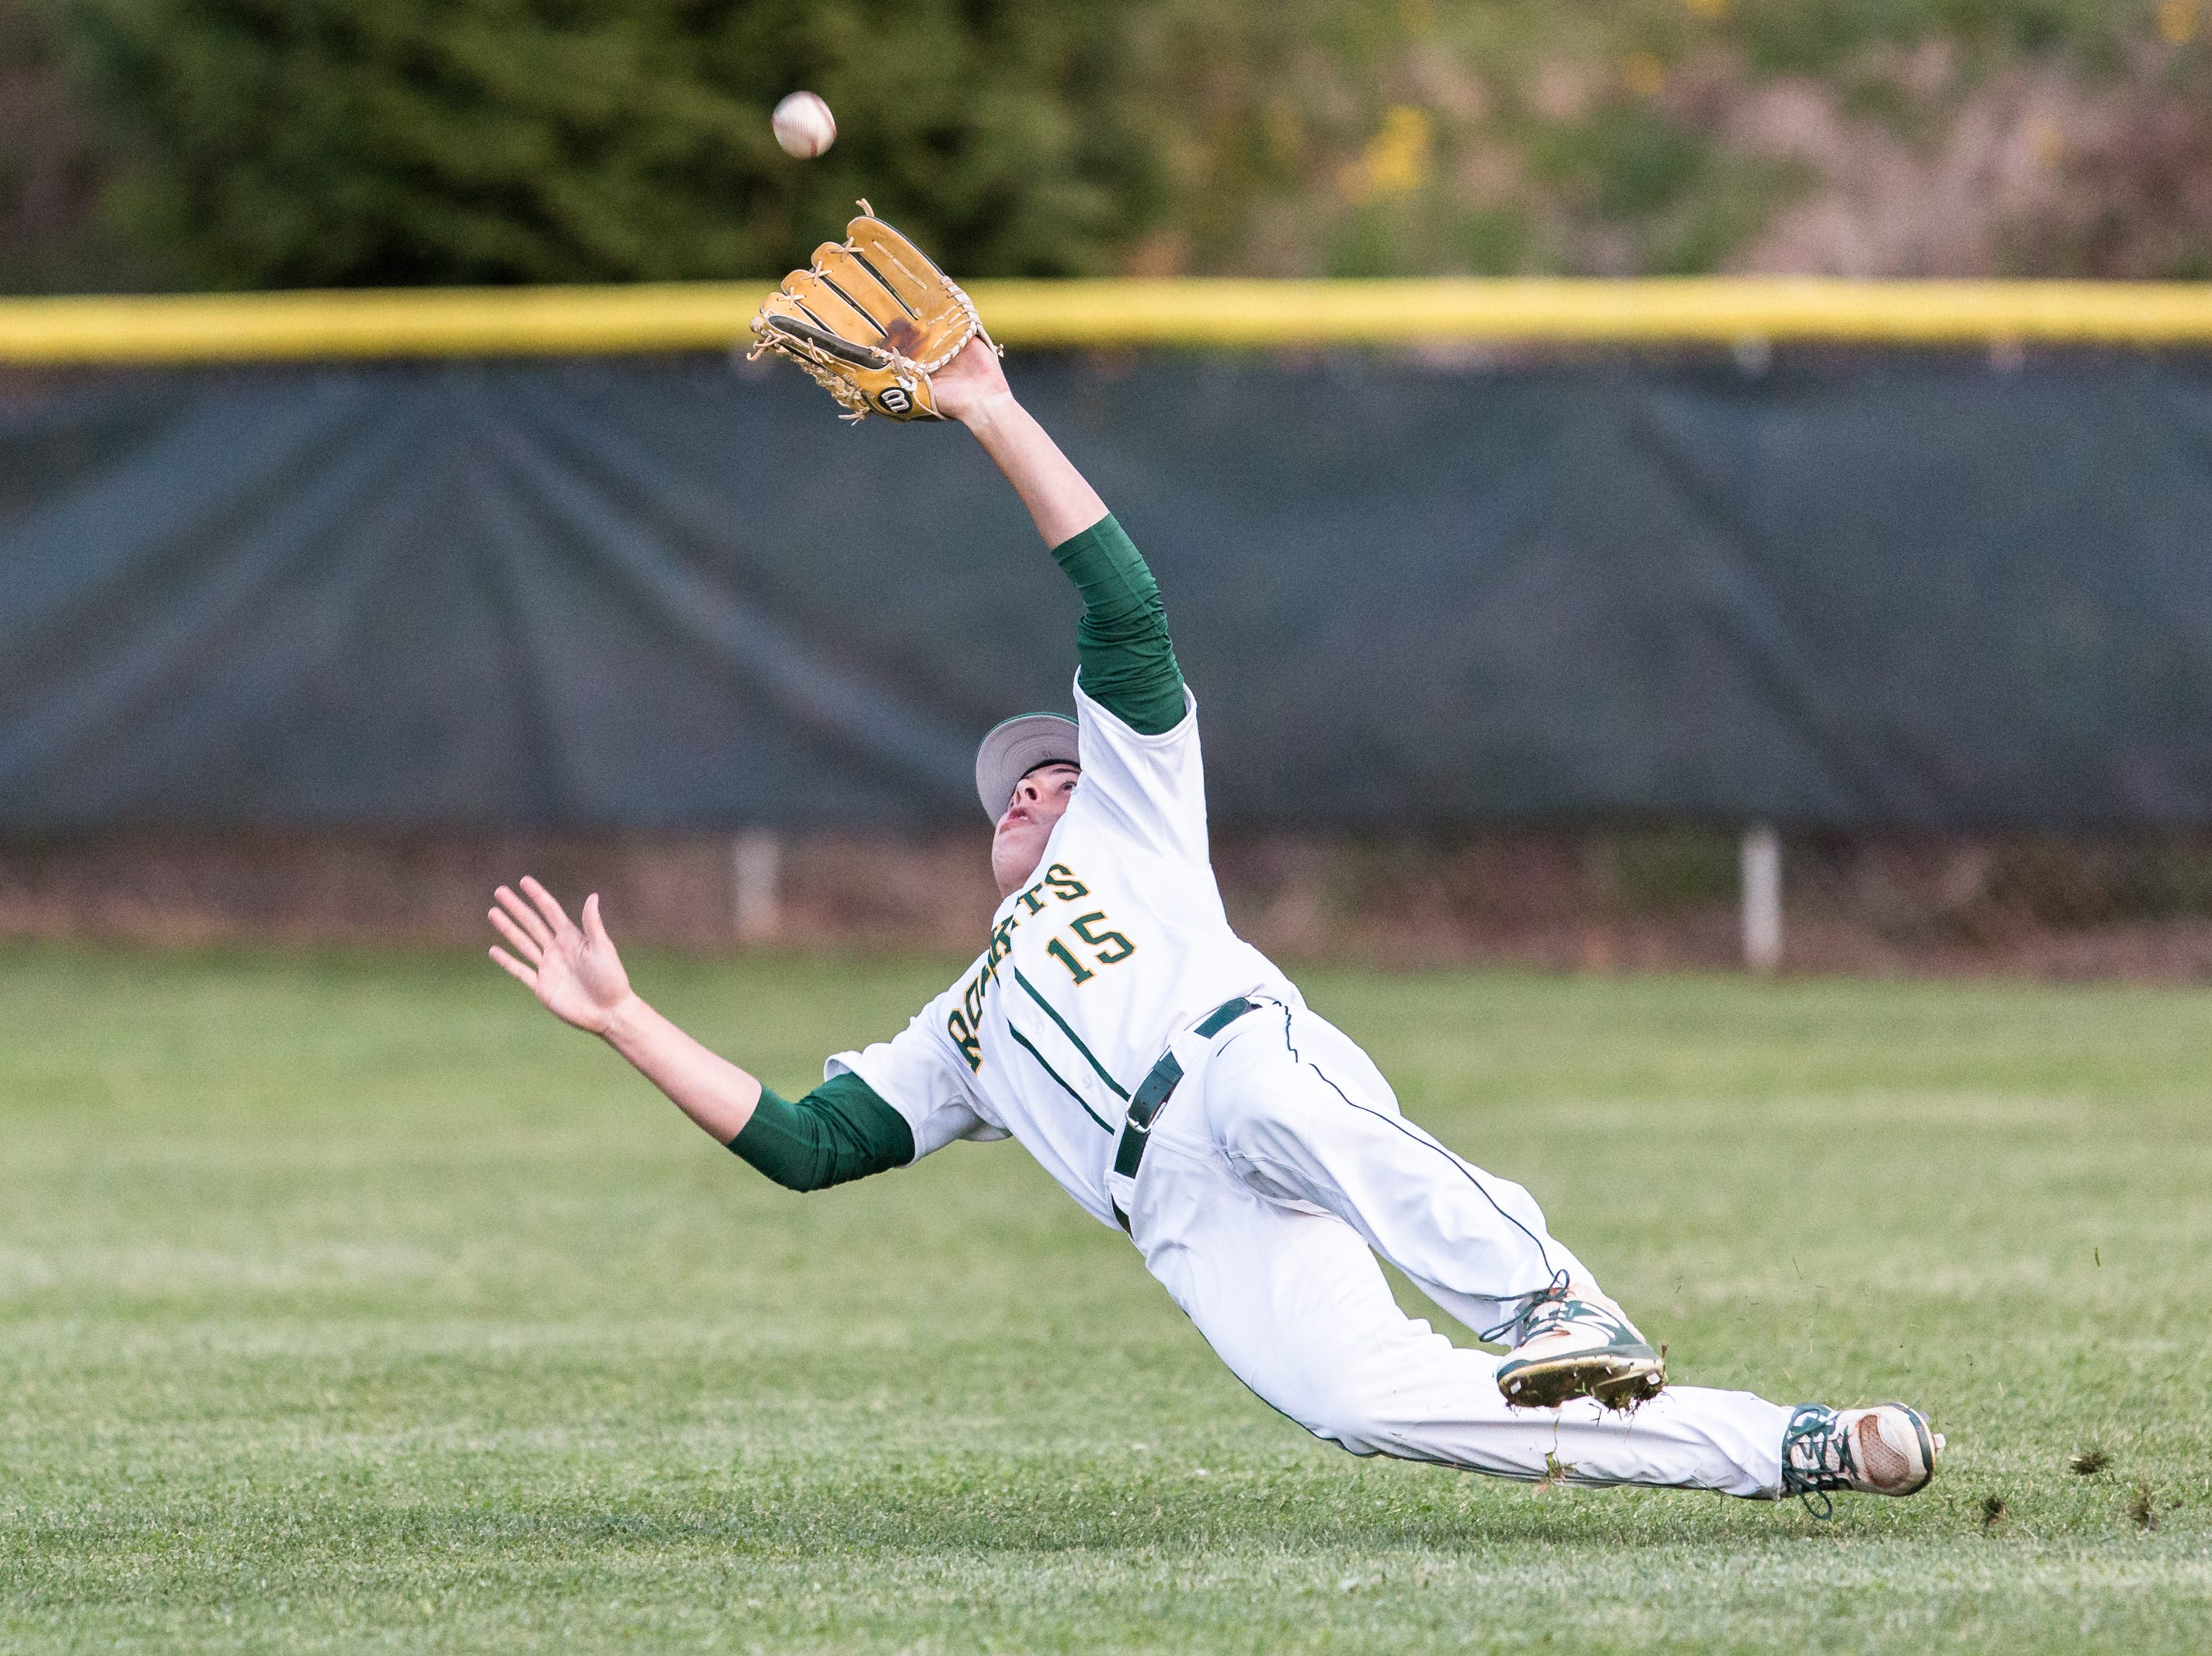 Reynolds' Alex Flinn dives to make a catch in the outfield for an out during their game against North Buncombe Friday, April 20, 2018.